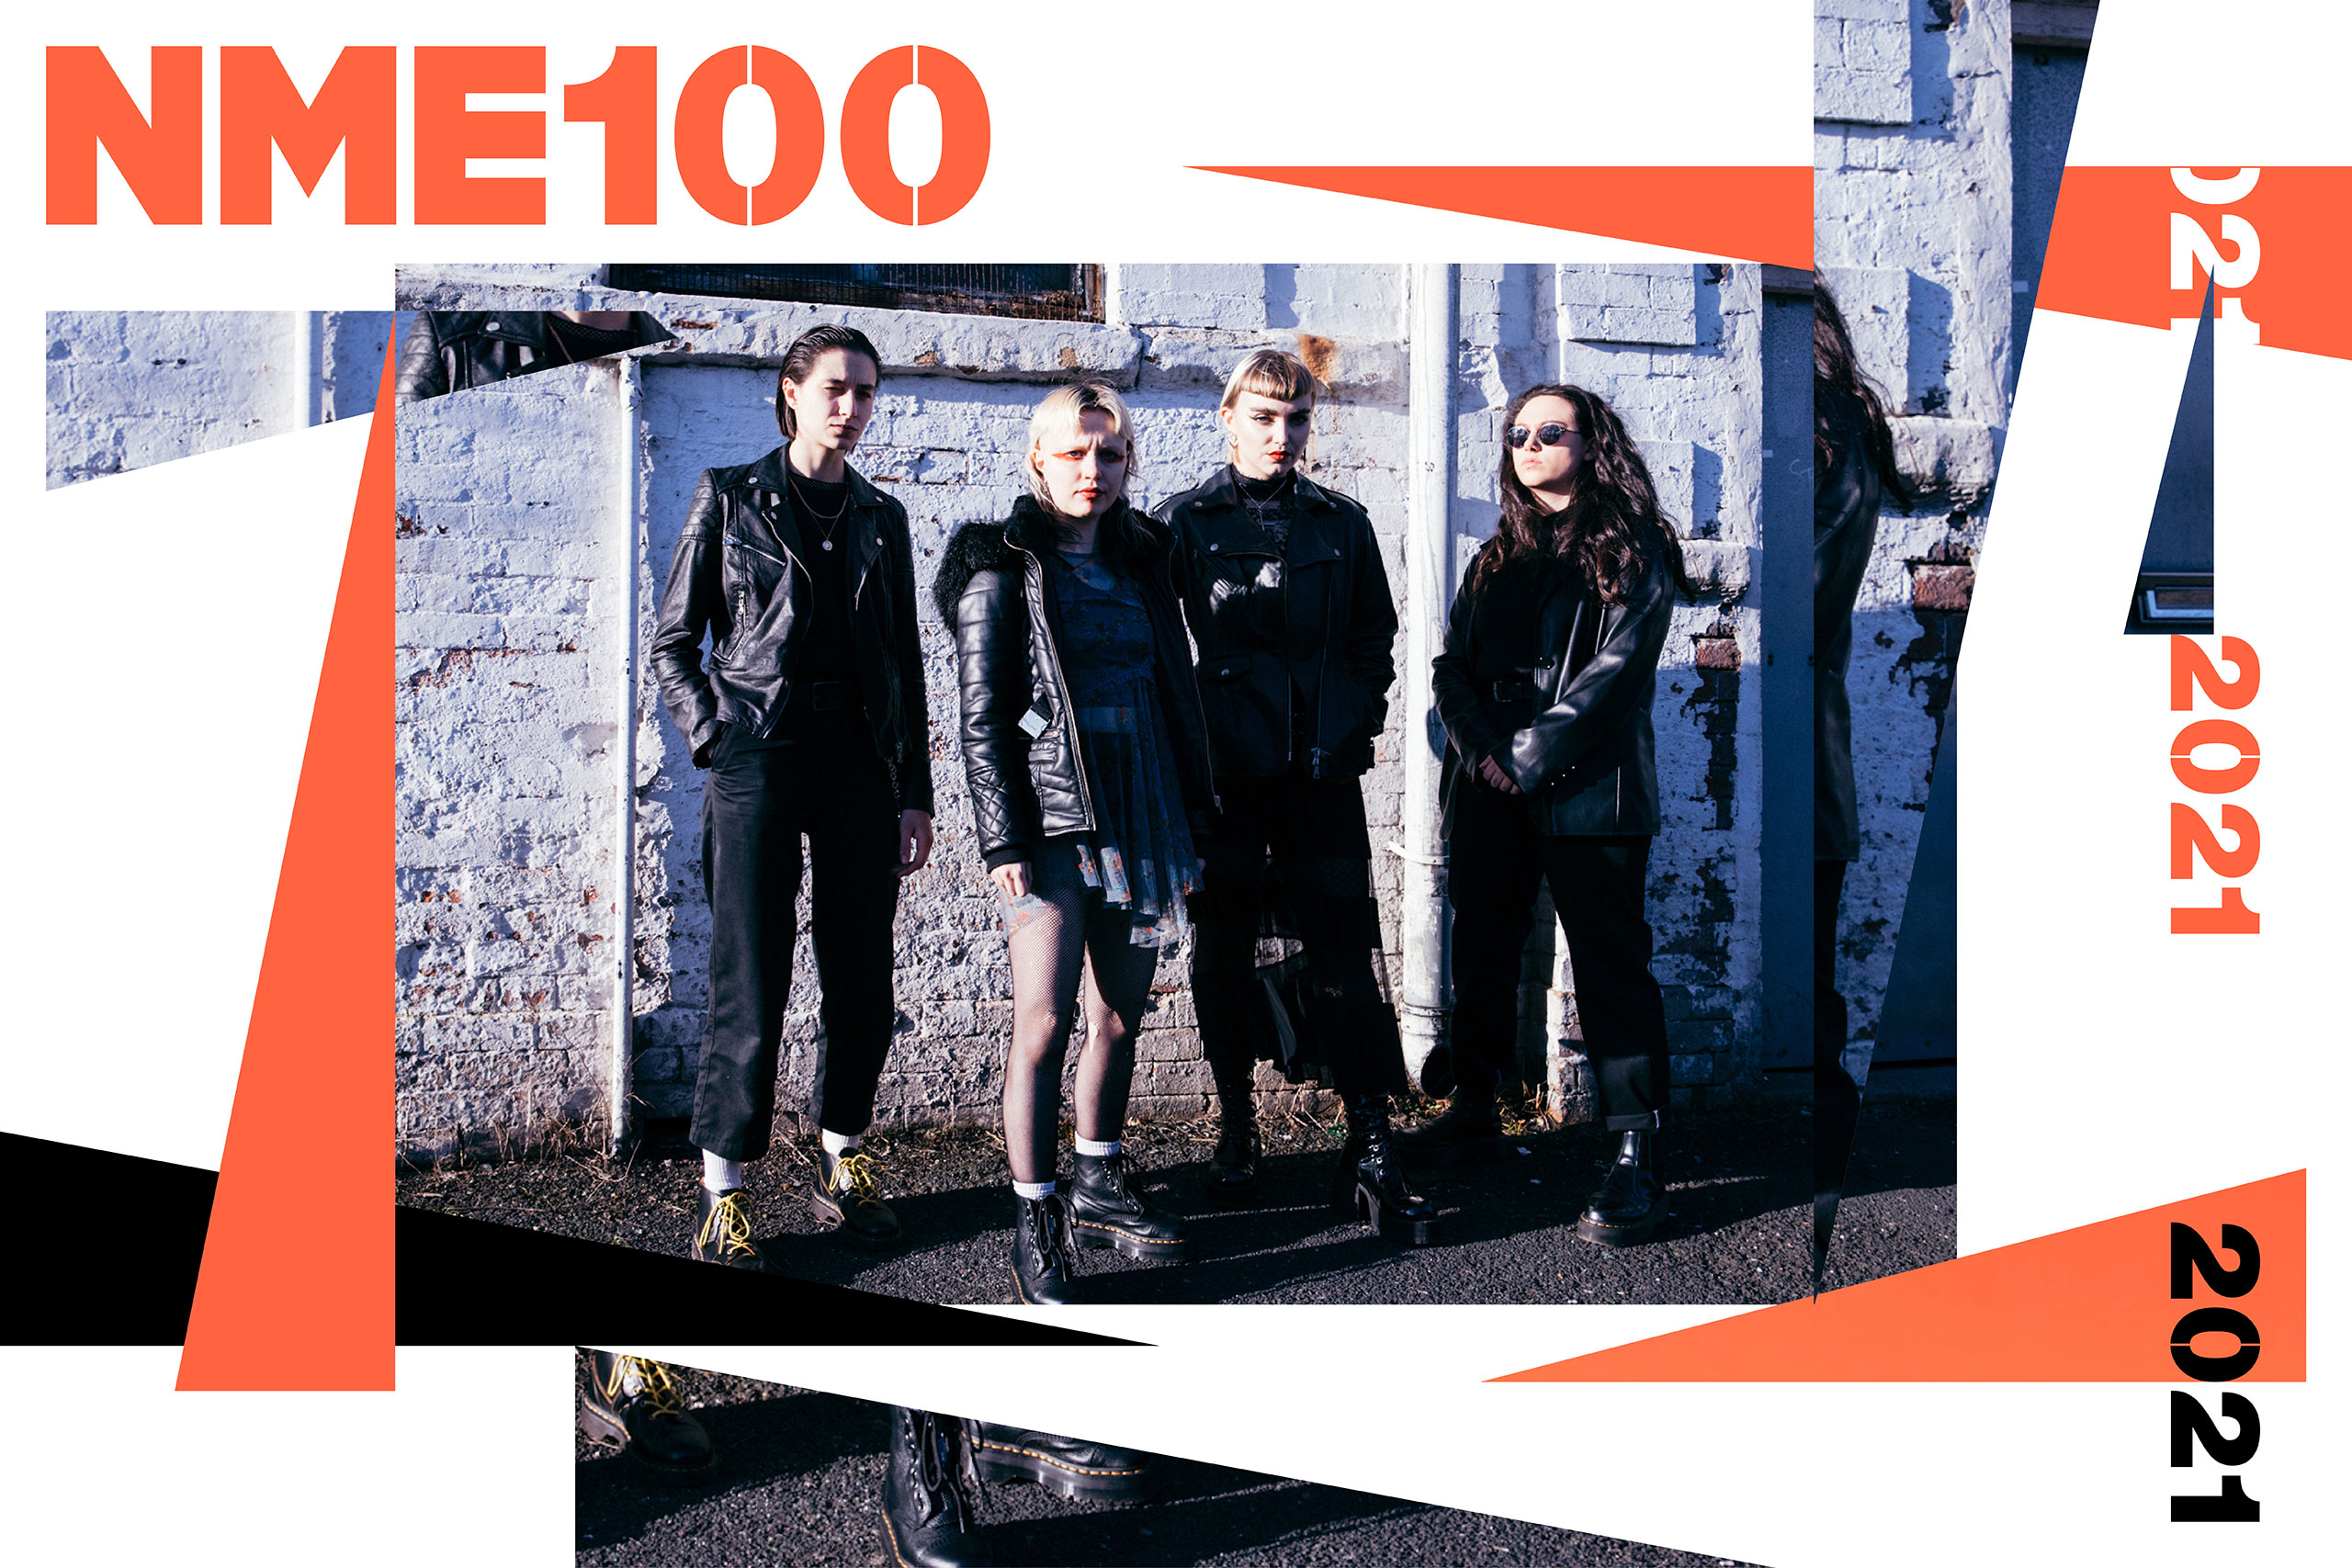 NME 100 witch fever